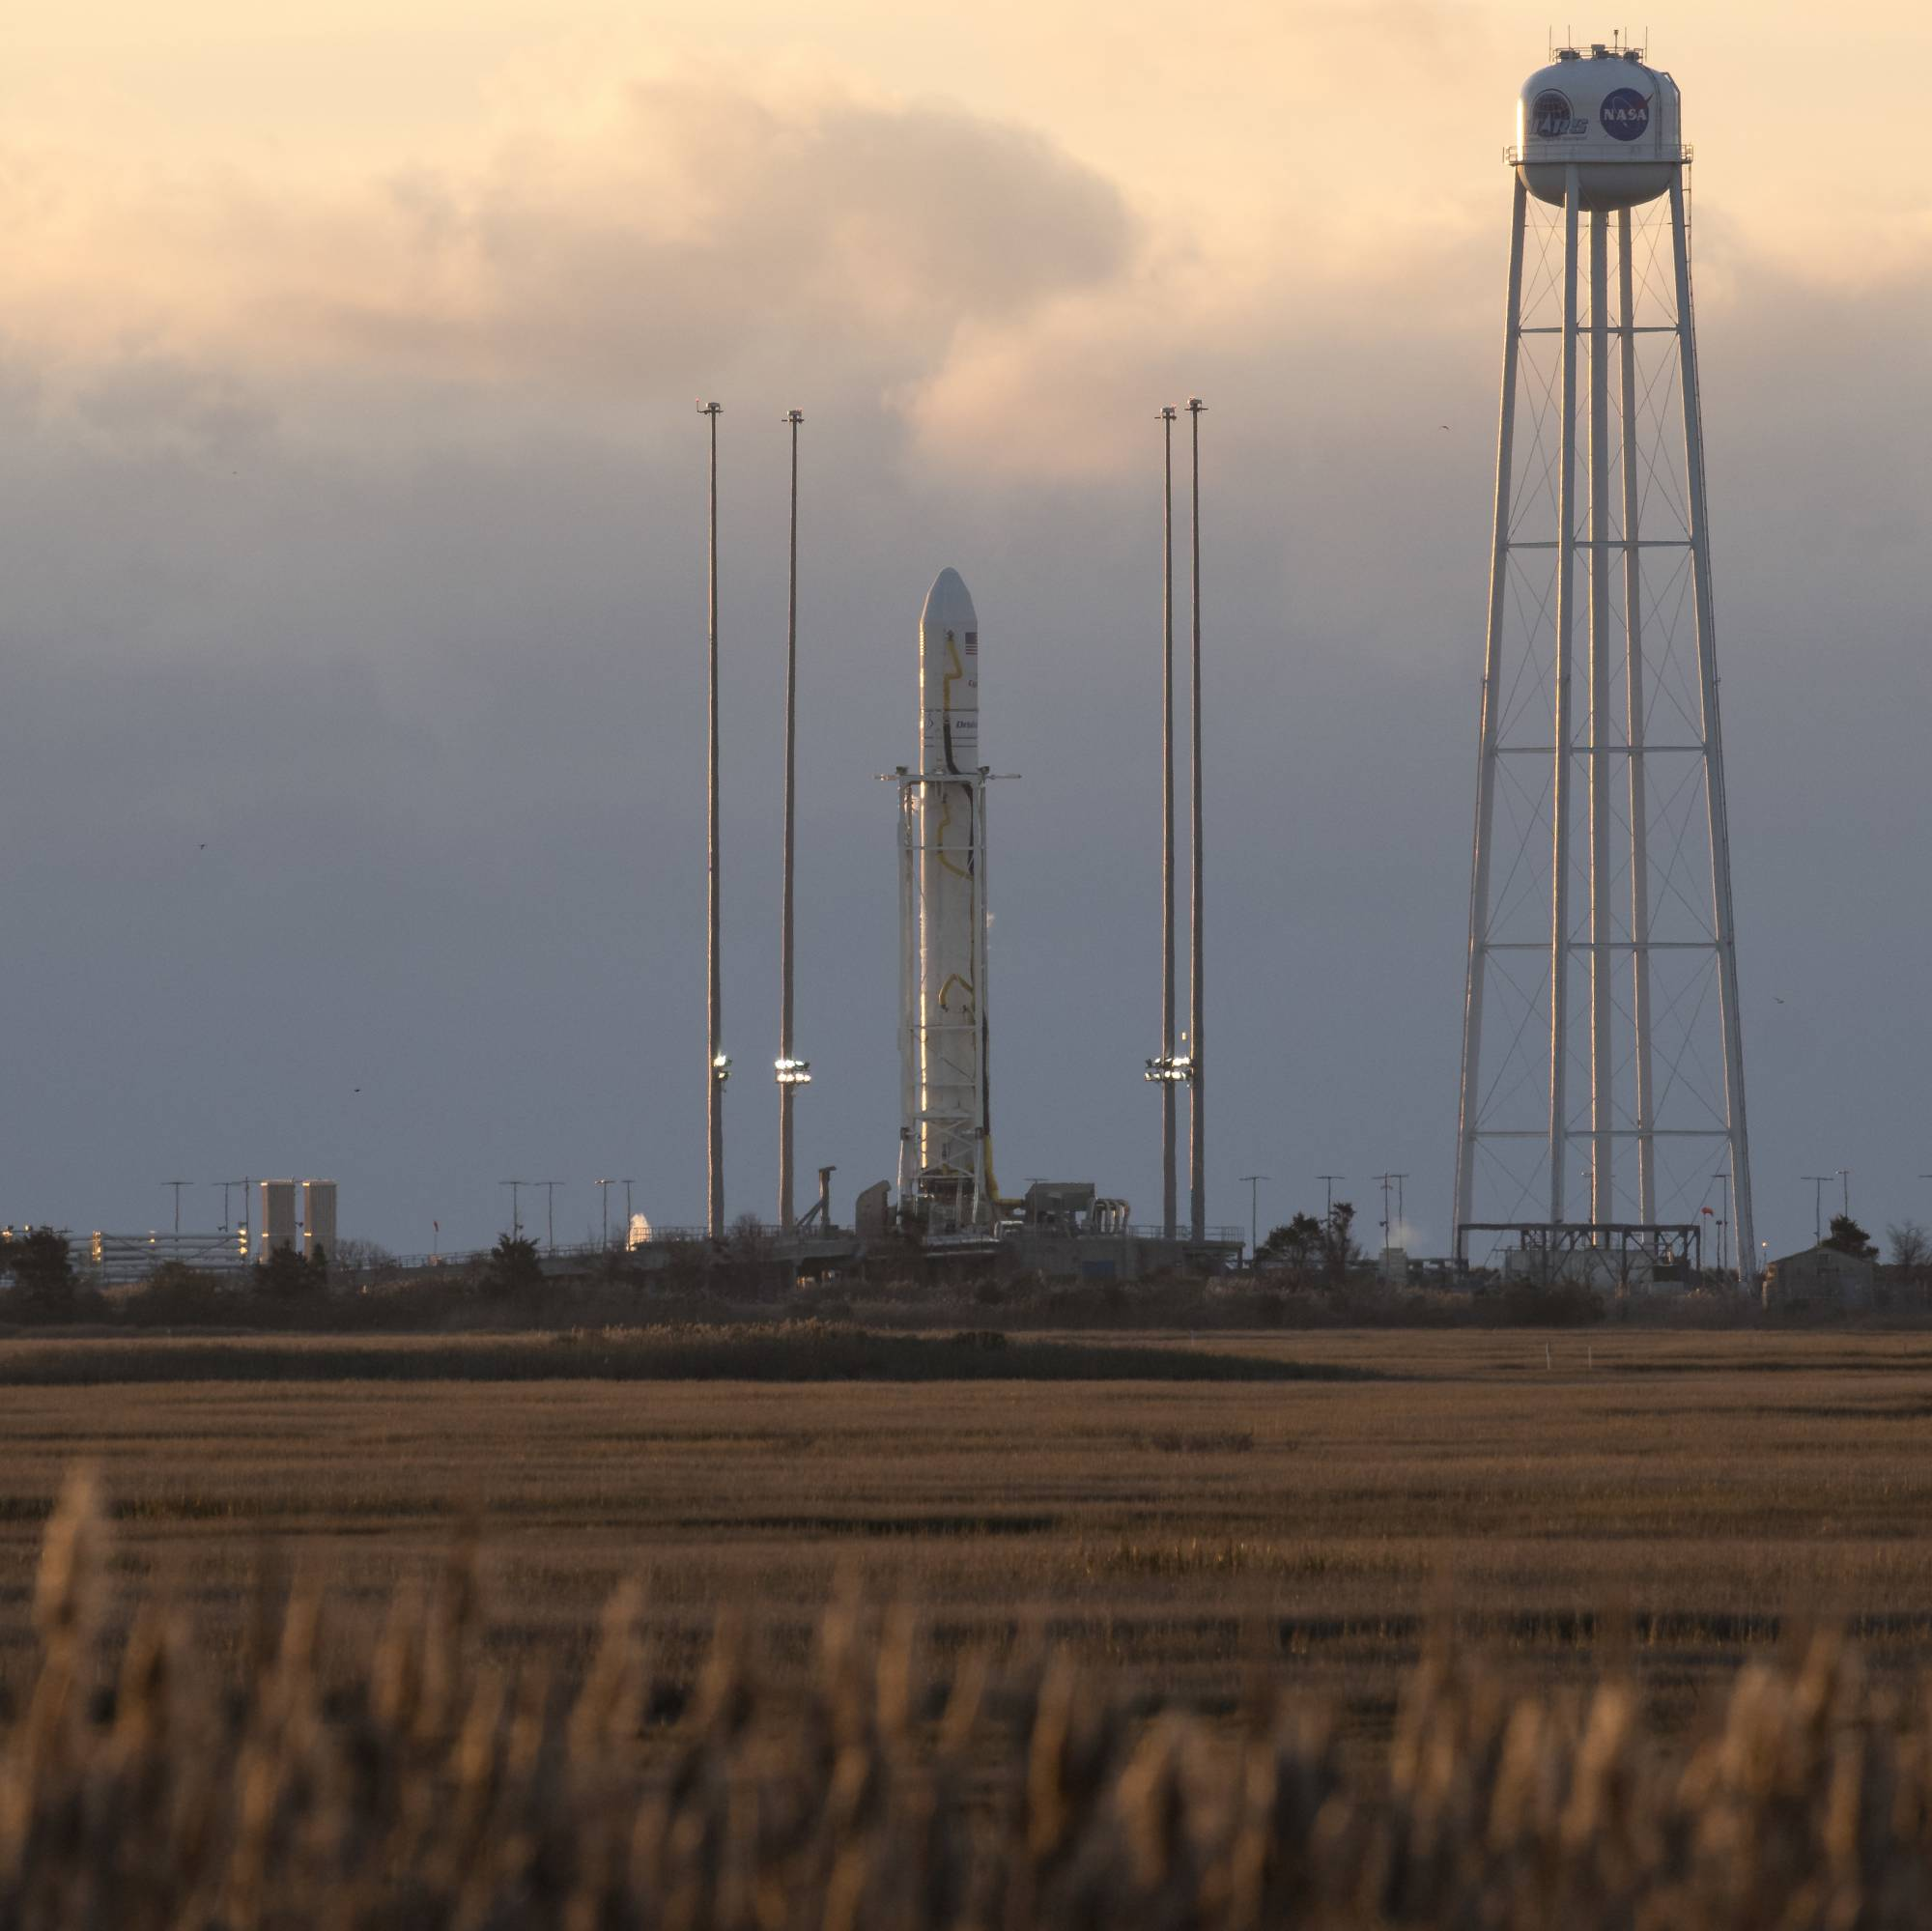 NASA mission scheduled to blast off from Virginia next month